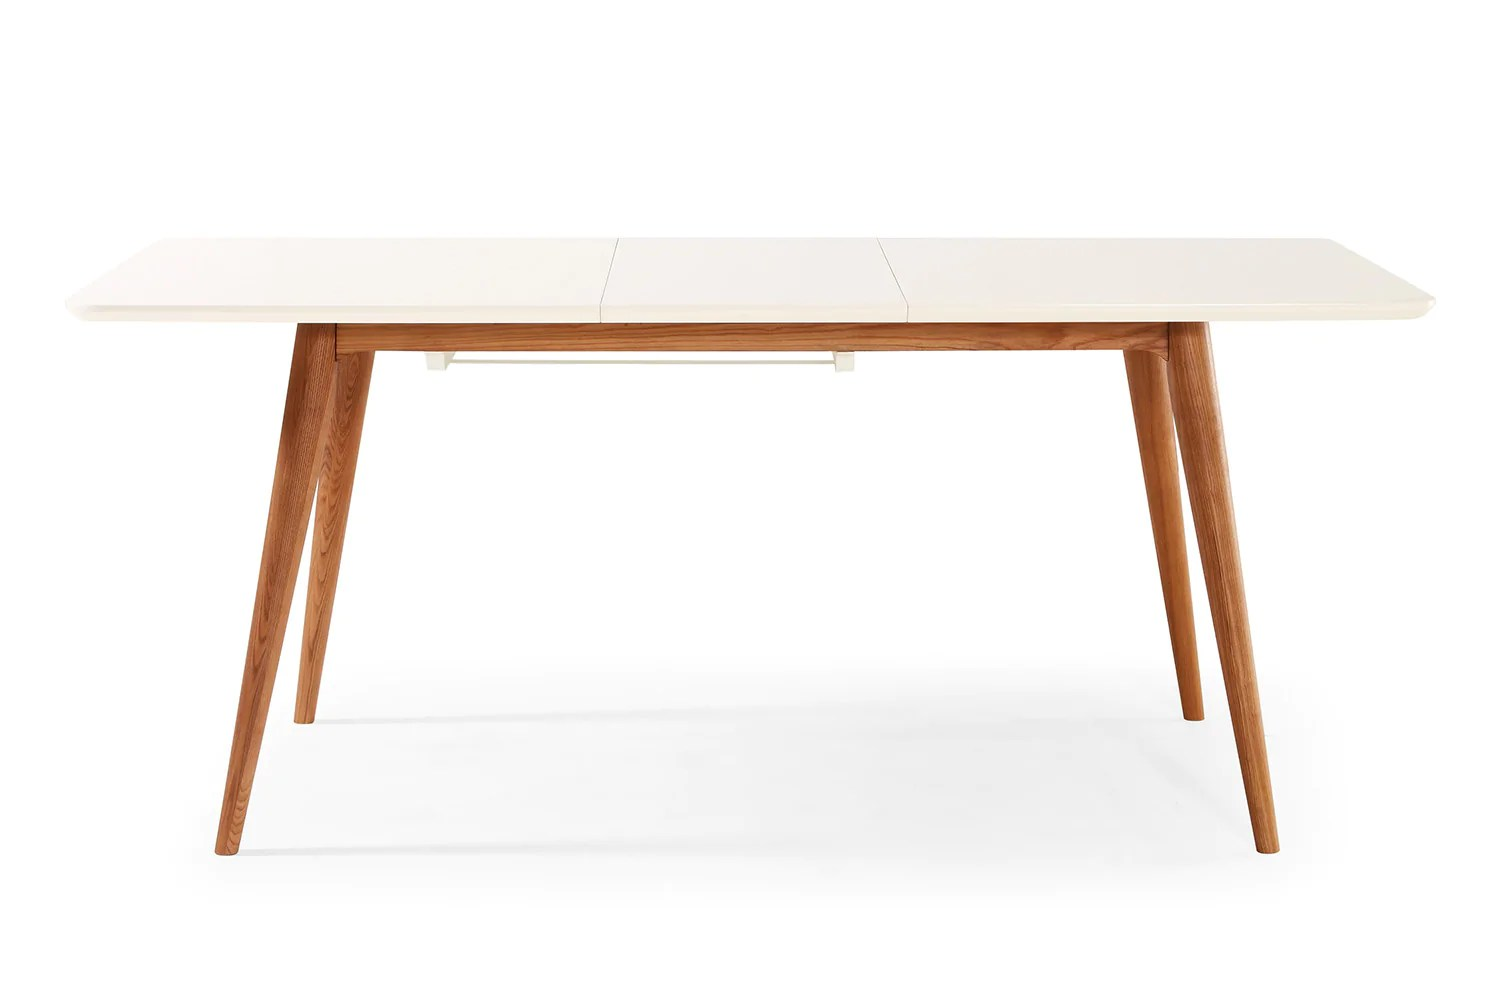 Table Manger Scandinave Table De Salle à Manger Extensible Scandinave Wyna Dewarens